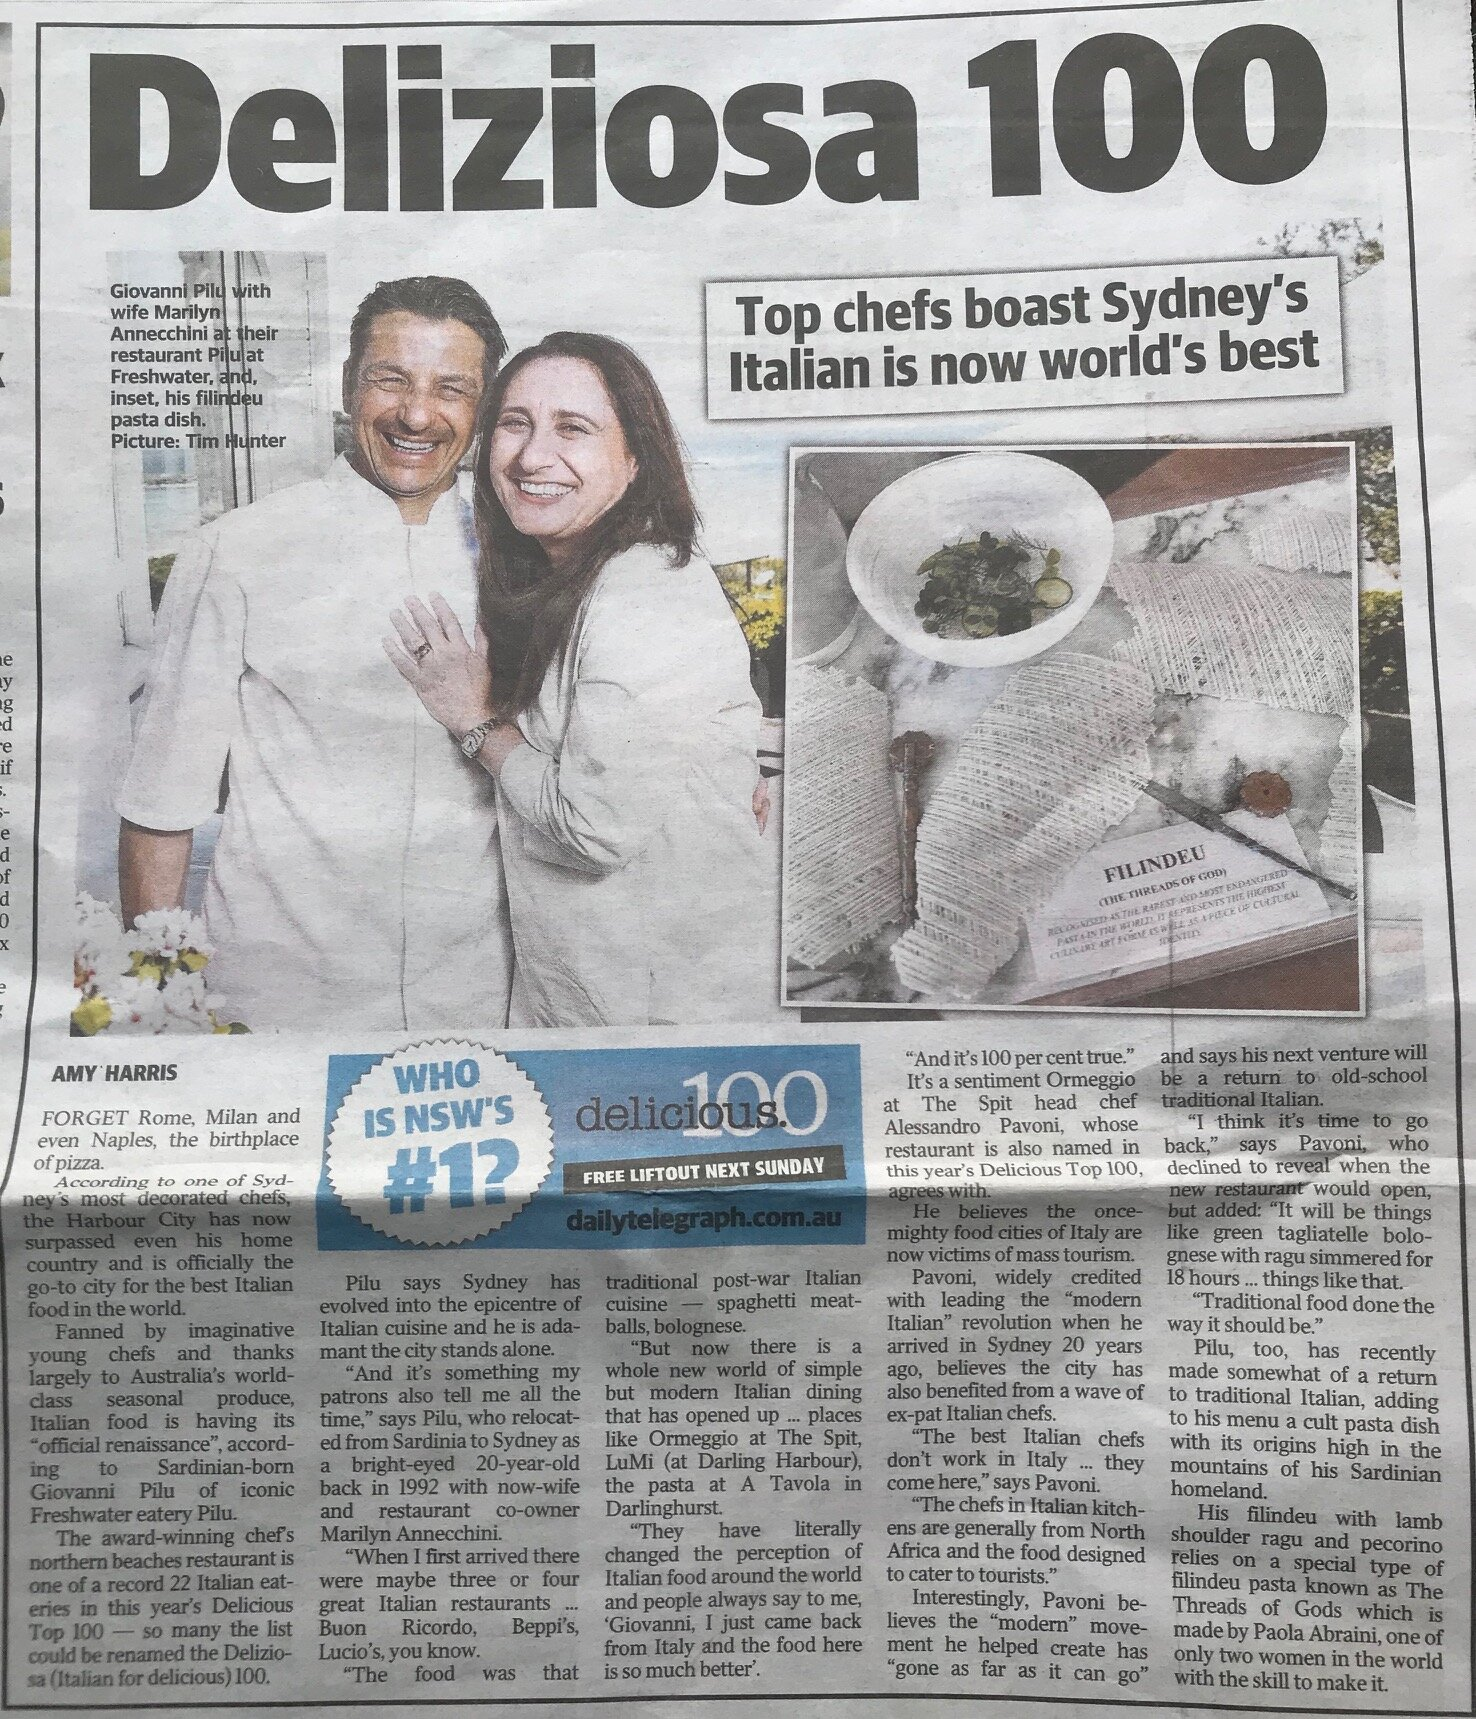 Congratulations to Gio Pilu on a lovely piece in the recent Sunday newspapers